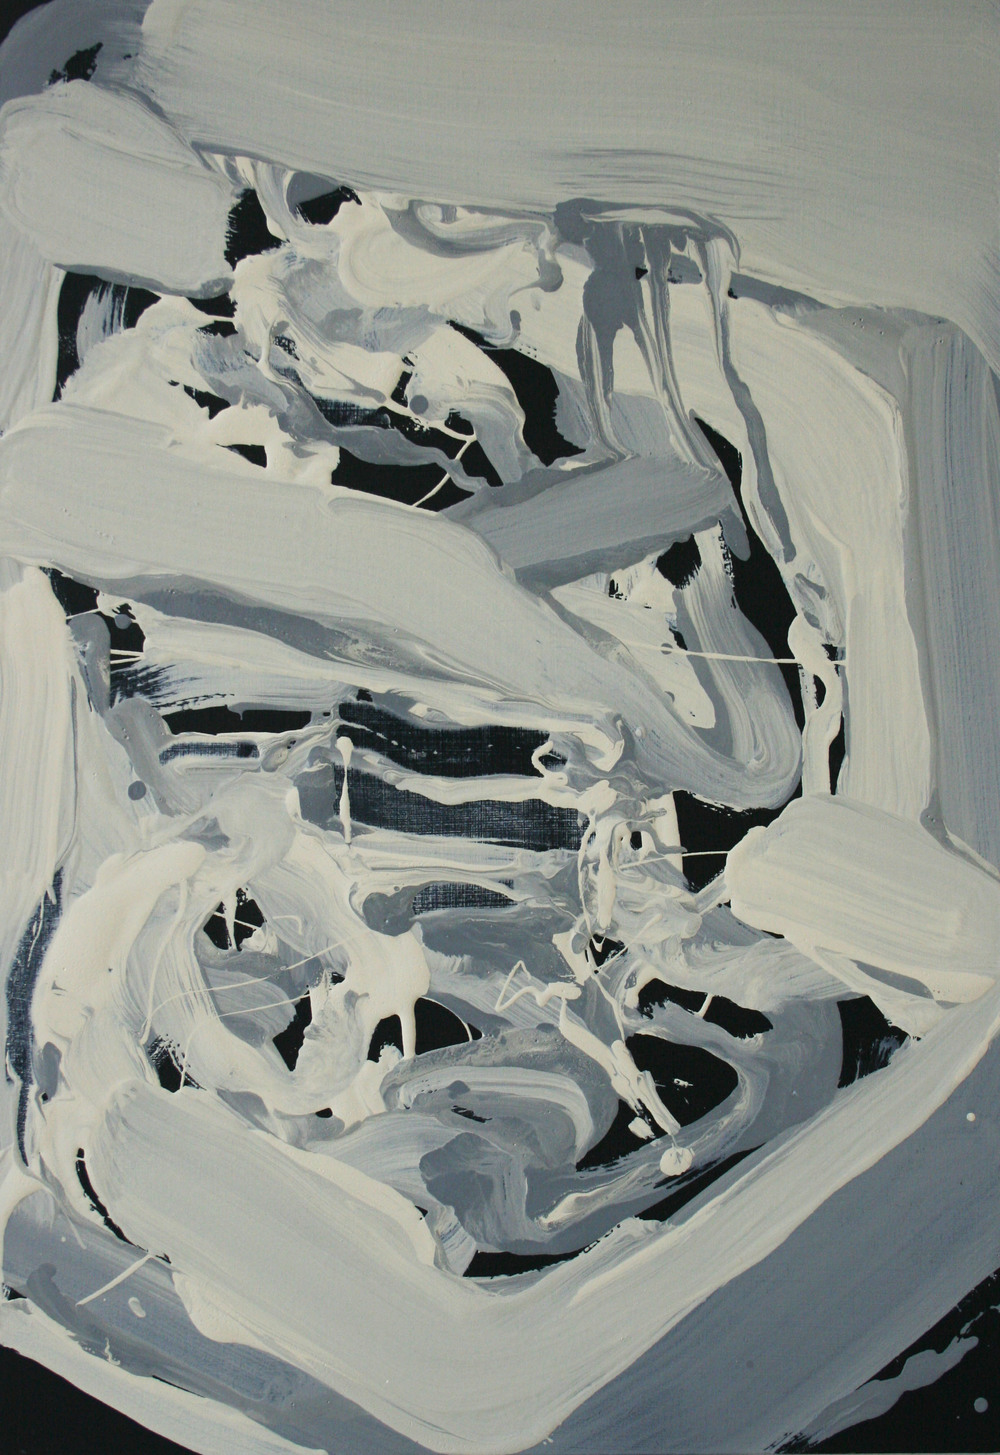 grey painting med 1 2011 oil on lacquered wood  44 x 30.5cm low res.jpg